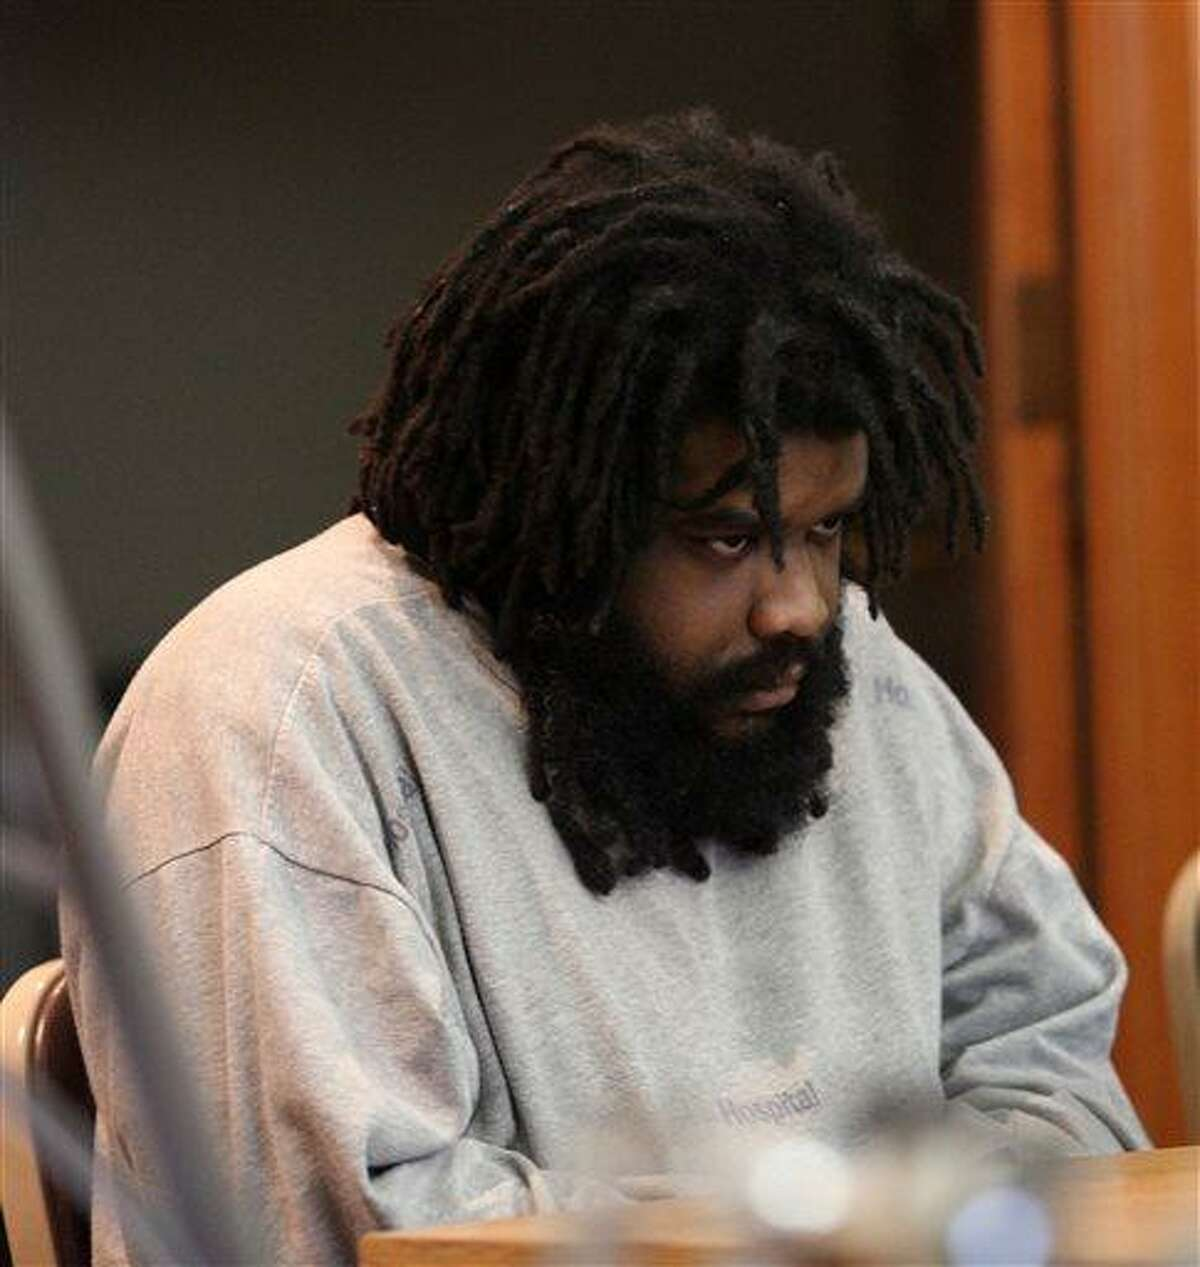 Tyree Smith sits during the first day of his trial before a three judge panel in Bridgeport, Conn., July 1, 2013. Smith is accused of killing and then eating parts of a homeless man in Connecticut. (AP Photo/The Connecticut Post, B.K. Angeletti) MANDATORY CREDIT